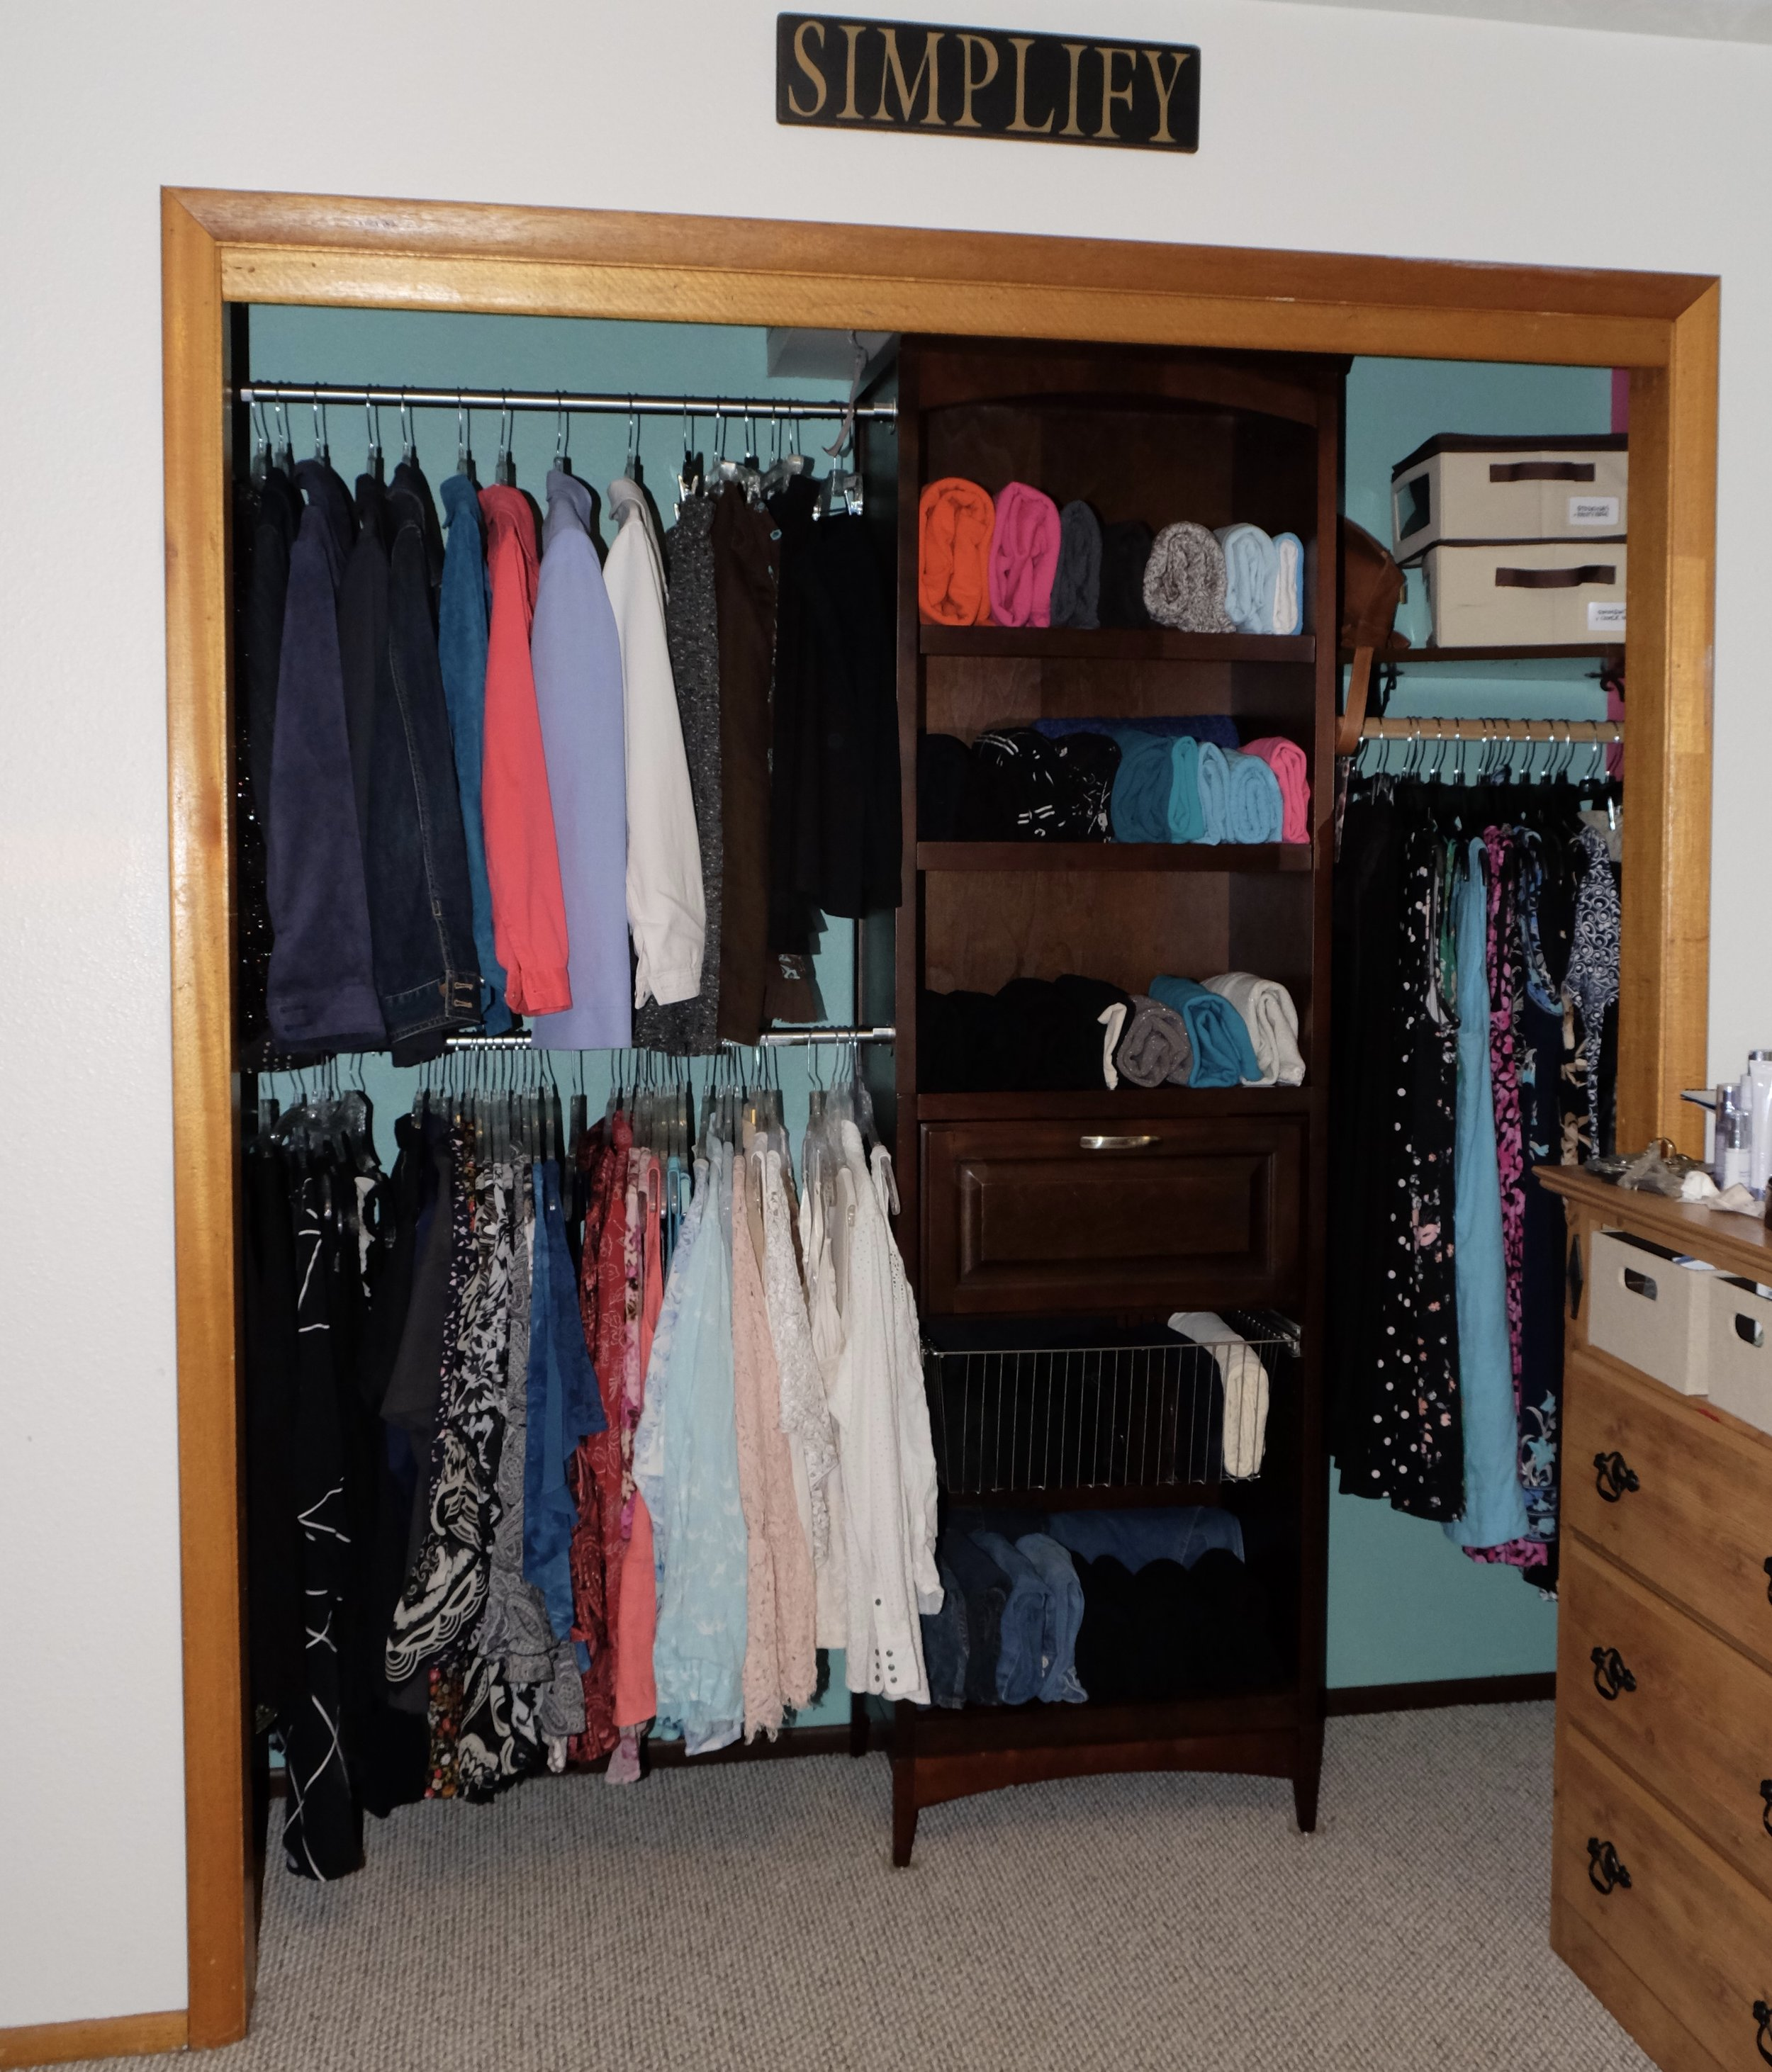 Organized and cheerful